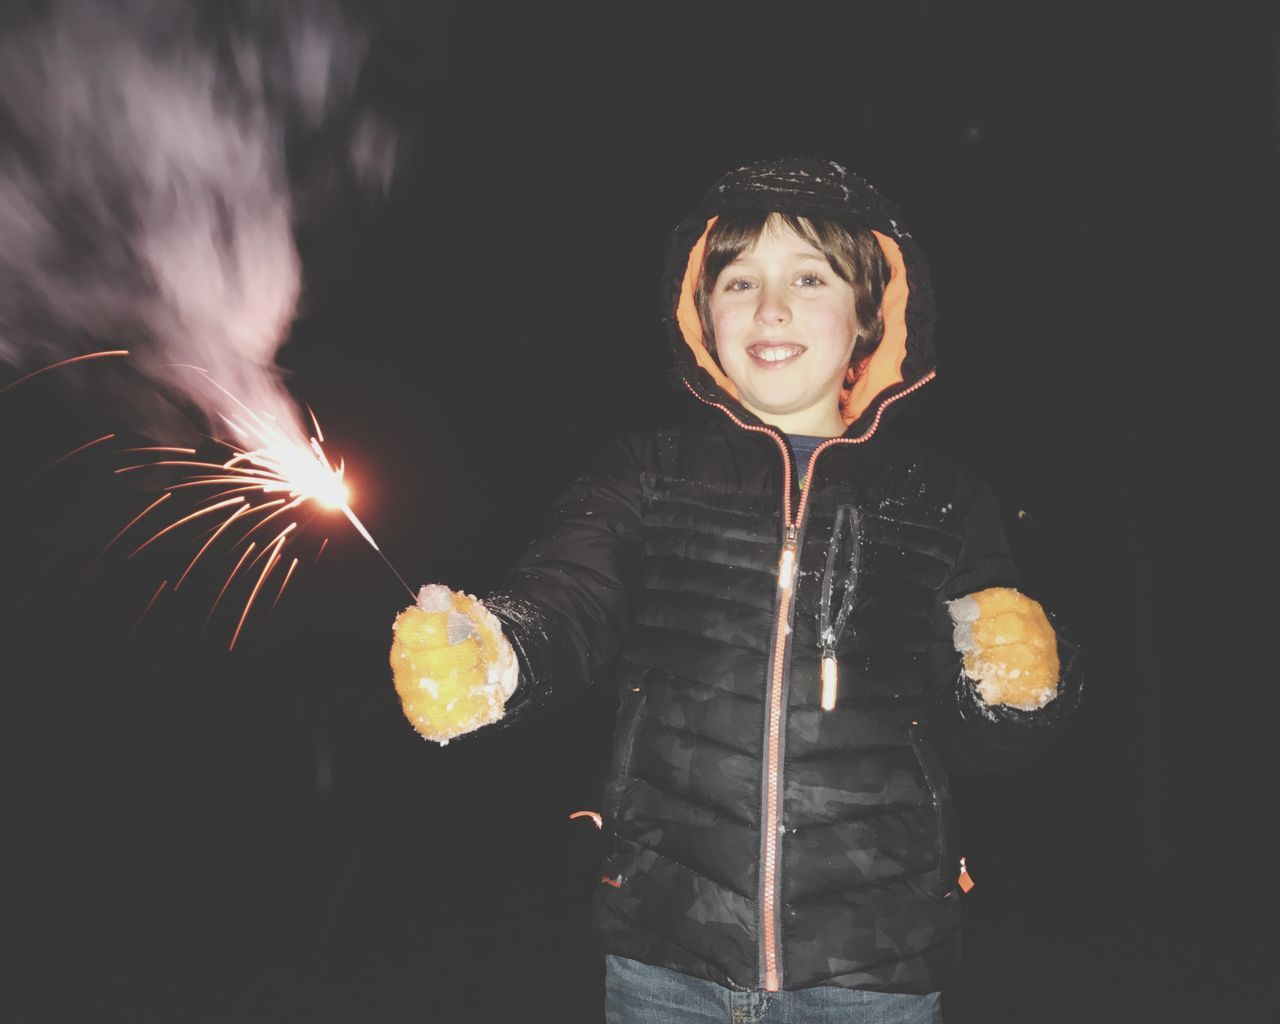 night, front view, one person, standing, sparkler, real people, illuminated, leisure activity, happiness, casual clothing, long exposure, lifestyles, childhood, young women, outdoors, smiling, young adult, black background, motion, looking at camera, portrait, sky, people